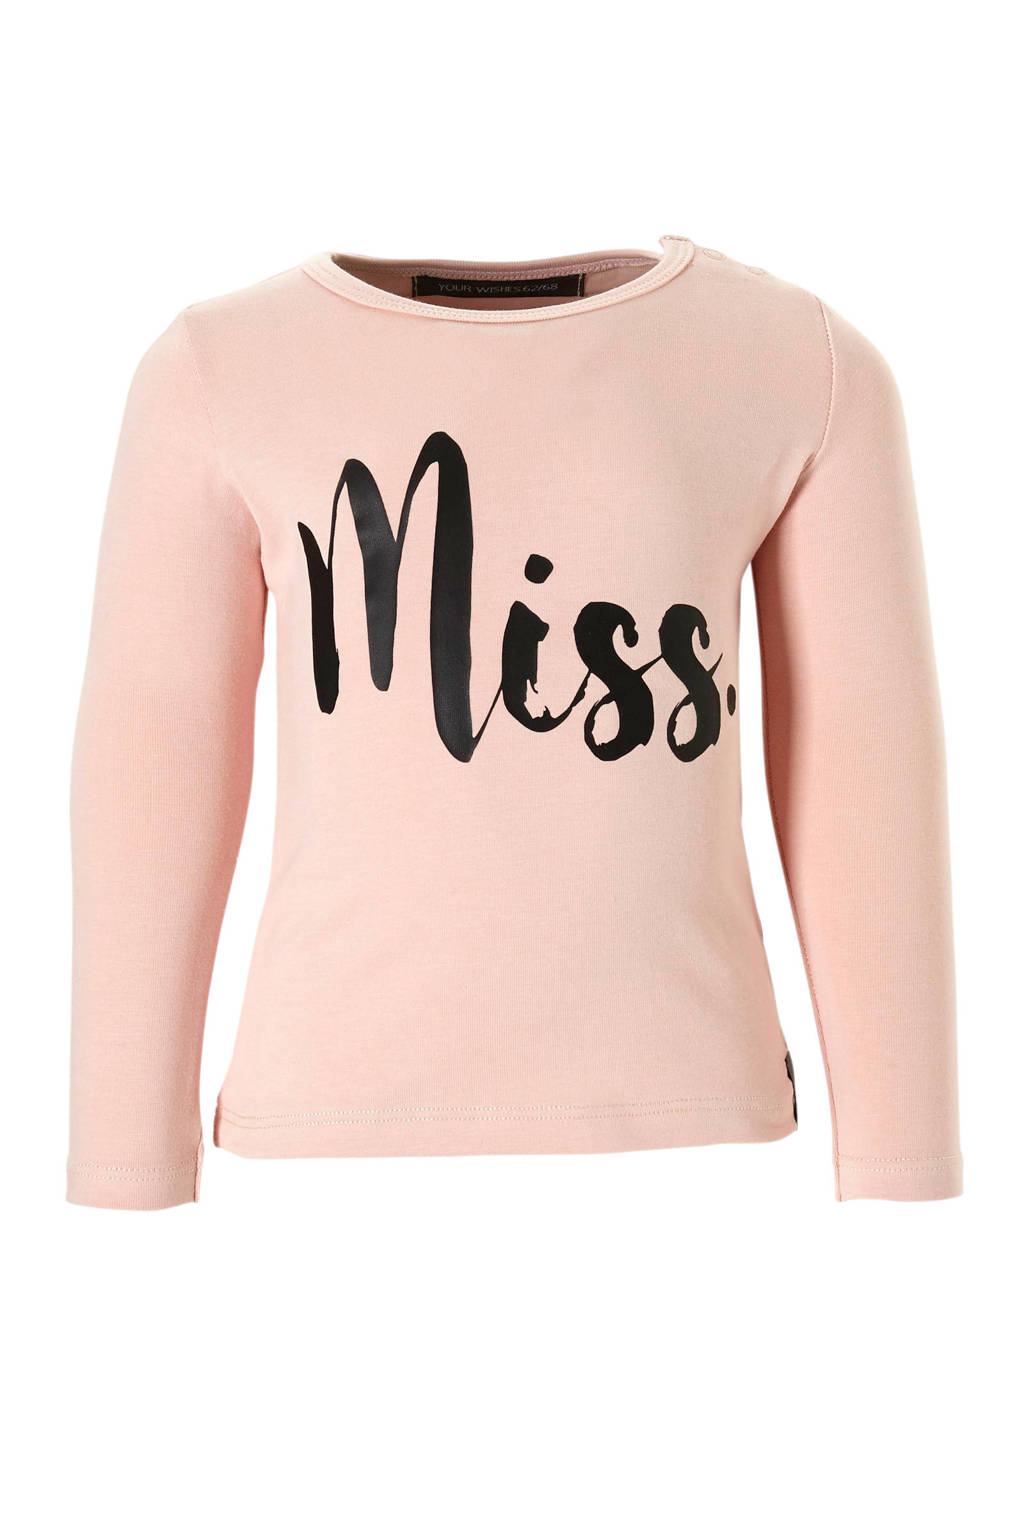 Your Wishes longsleeve Miss met tekst roze, Lichtroze